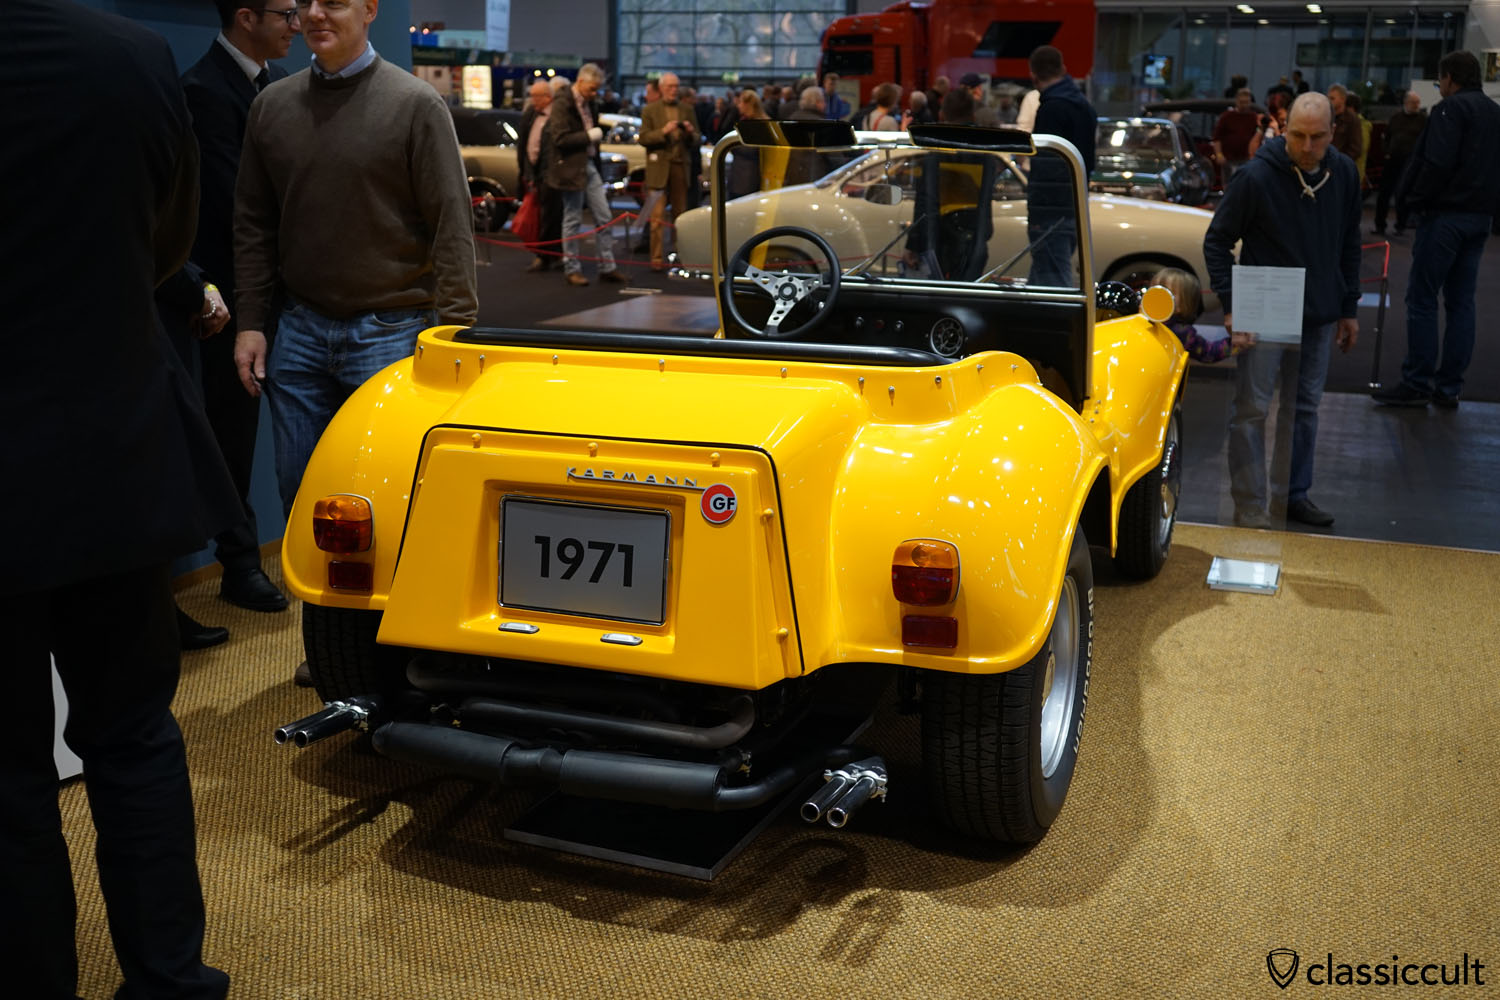 1971 Karmann GF Buggy, rear view